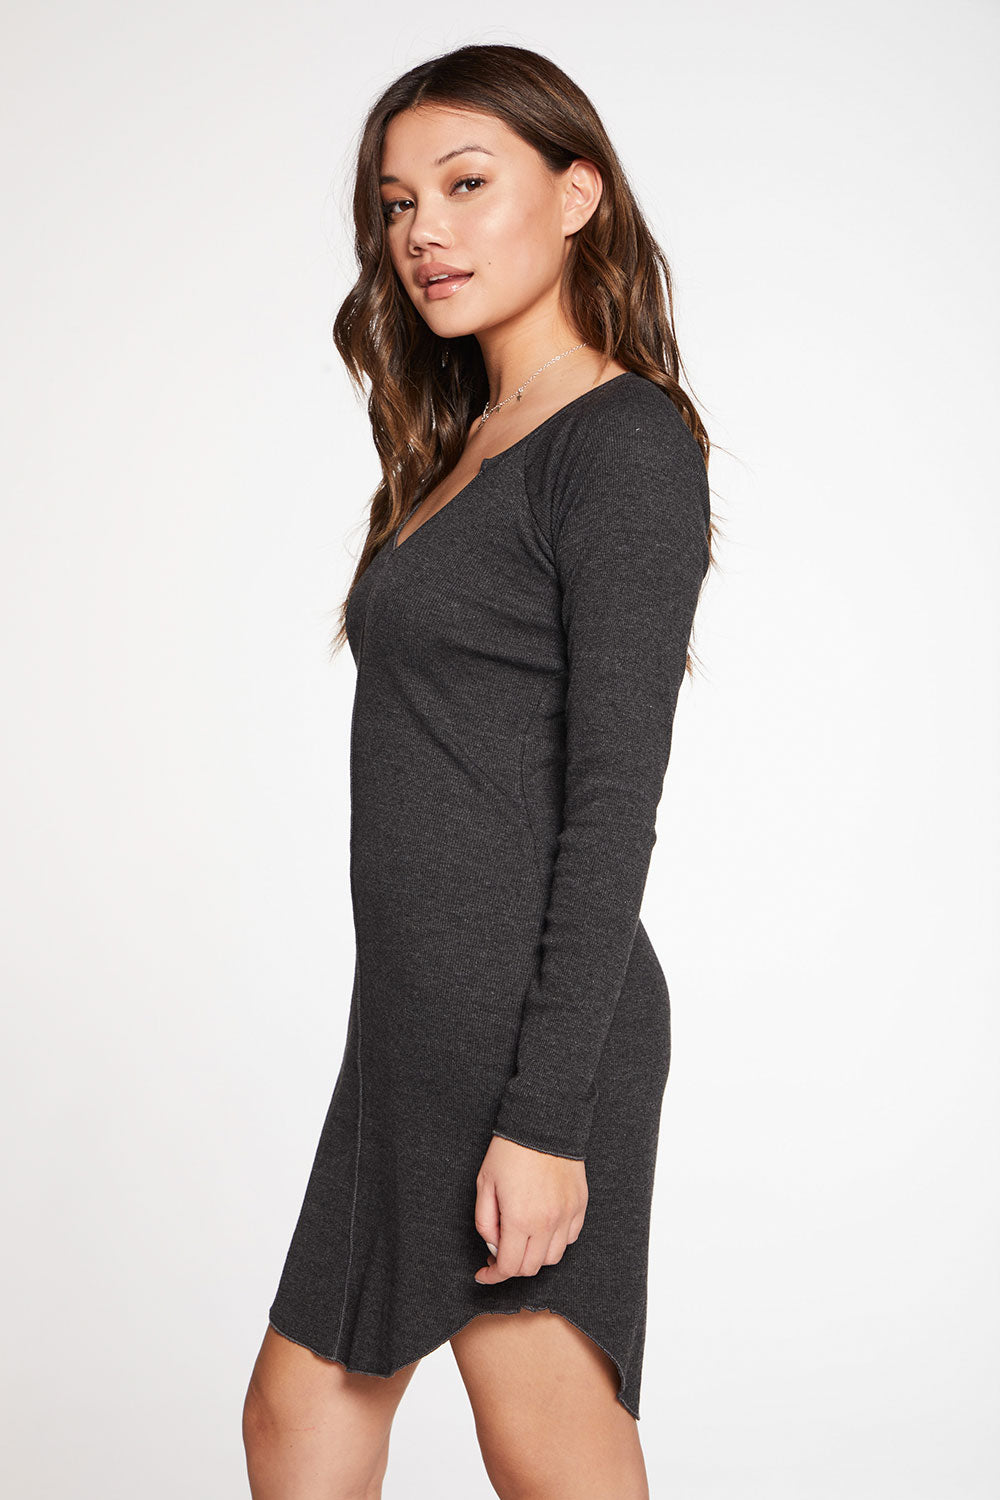 Triblend Rib Long Sleeve Split Neck Raglan Shirttail Mini Dress WOMENS chaserbrand4.myshopify.com